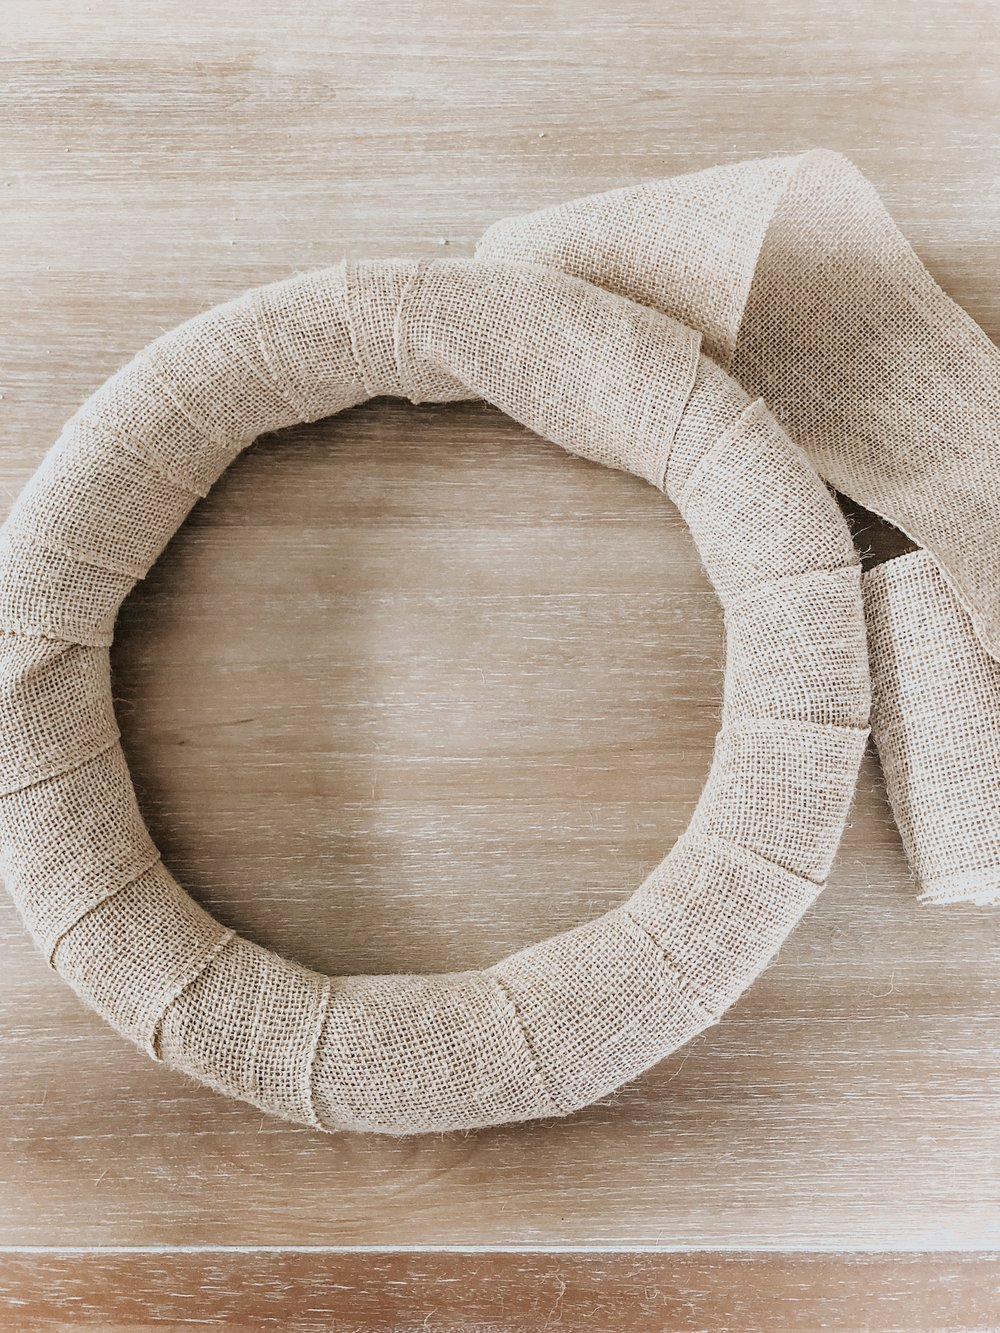 Wreath wrapped with burlap